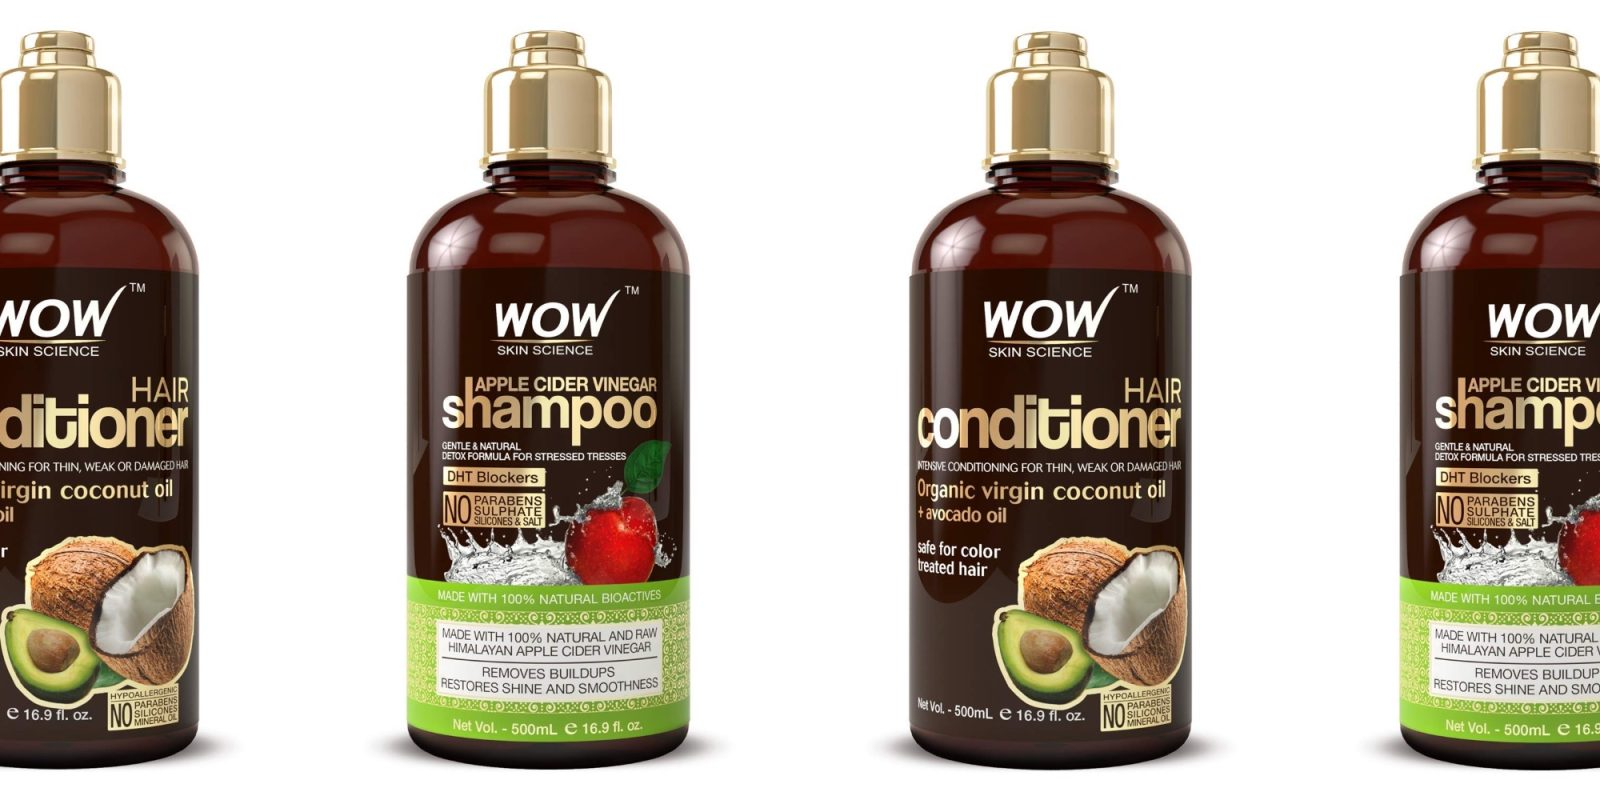 Save 33% on this highly-rated Apple Cider Vinegar Shampoo Set, now at $20